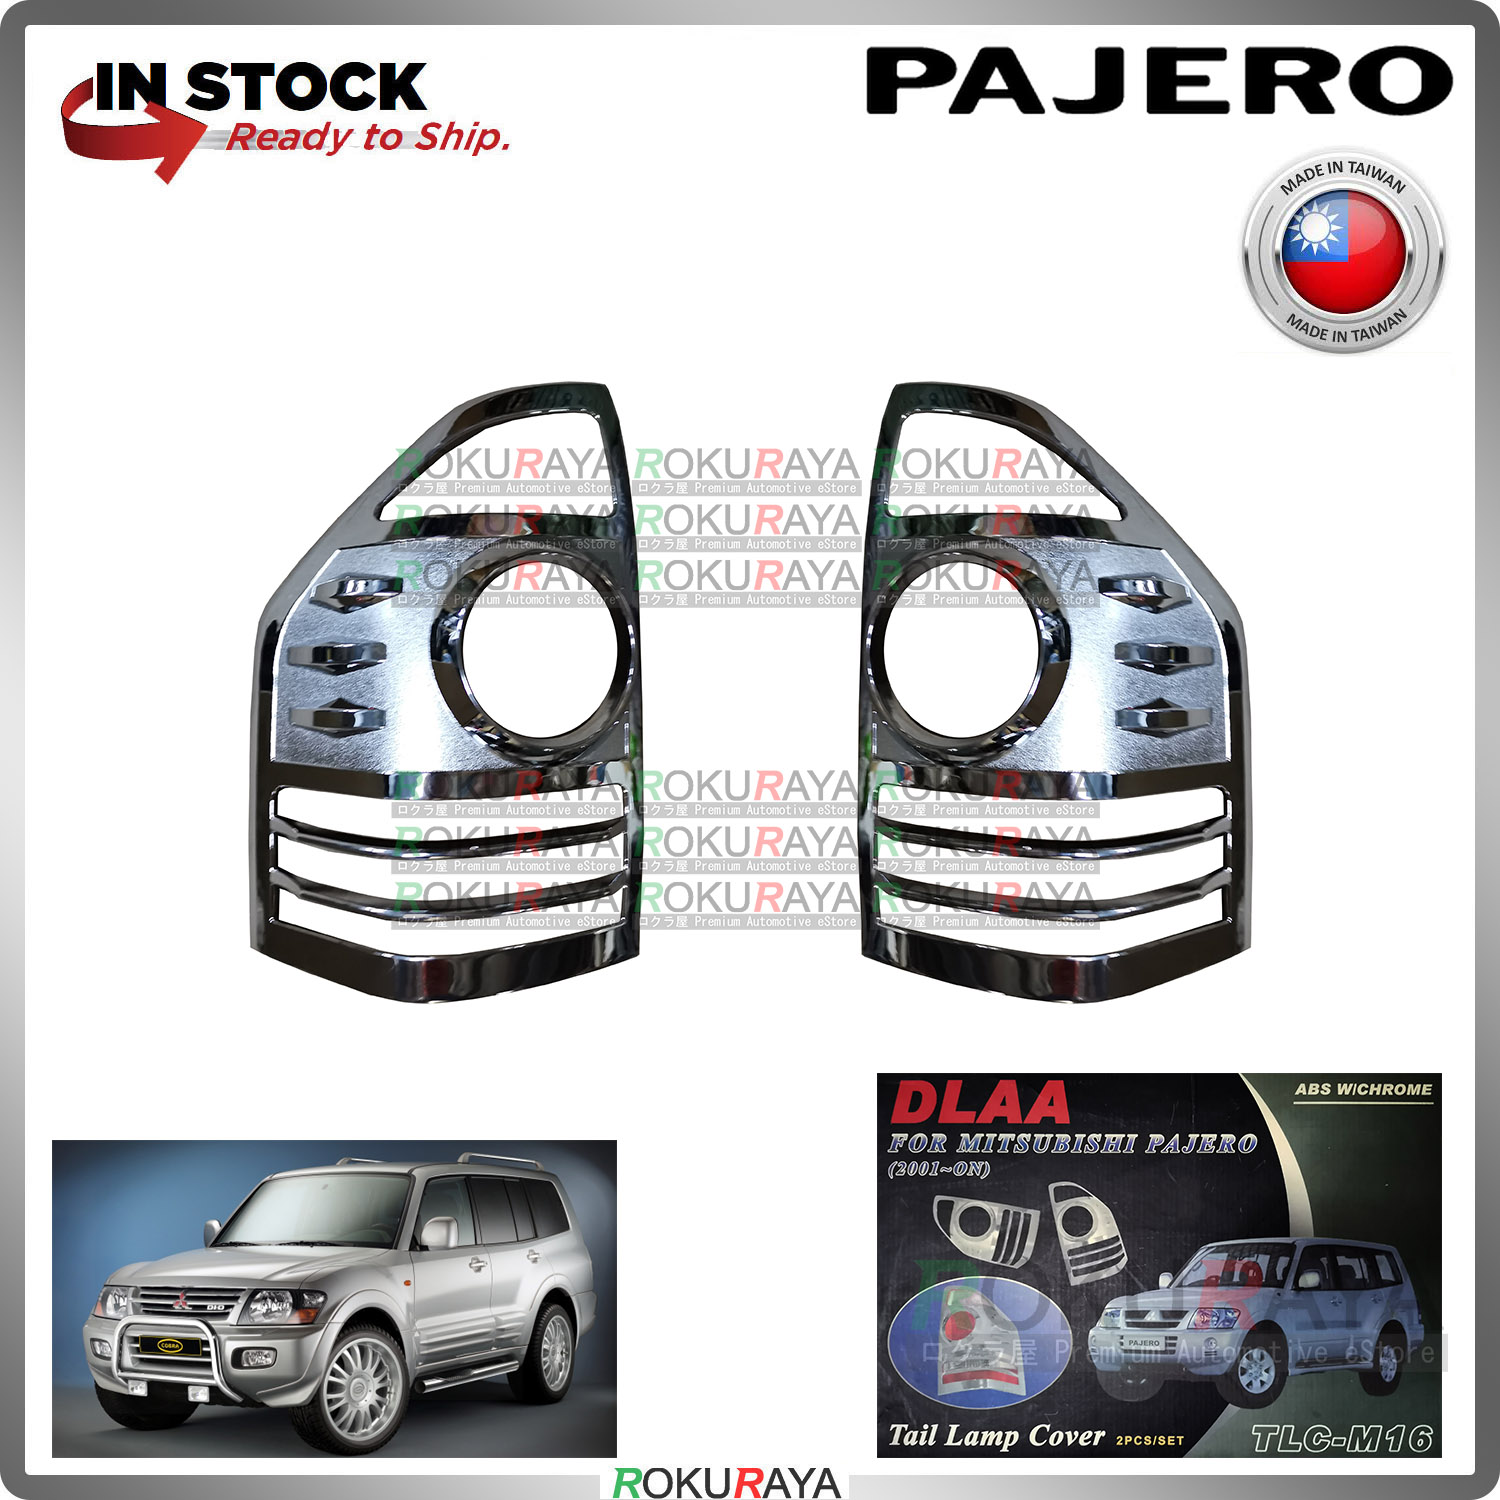 [CHROME] Mitubishi Pajero Exceed Super DLAA ABS Plastic Rear Tail Lamp Garnish Moulding Cover Trim Car Accessories Parts